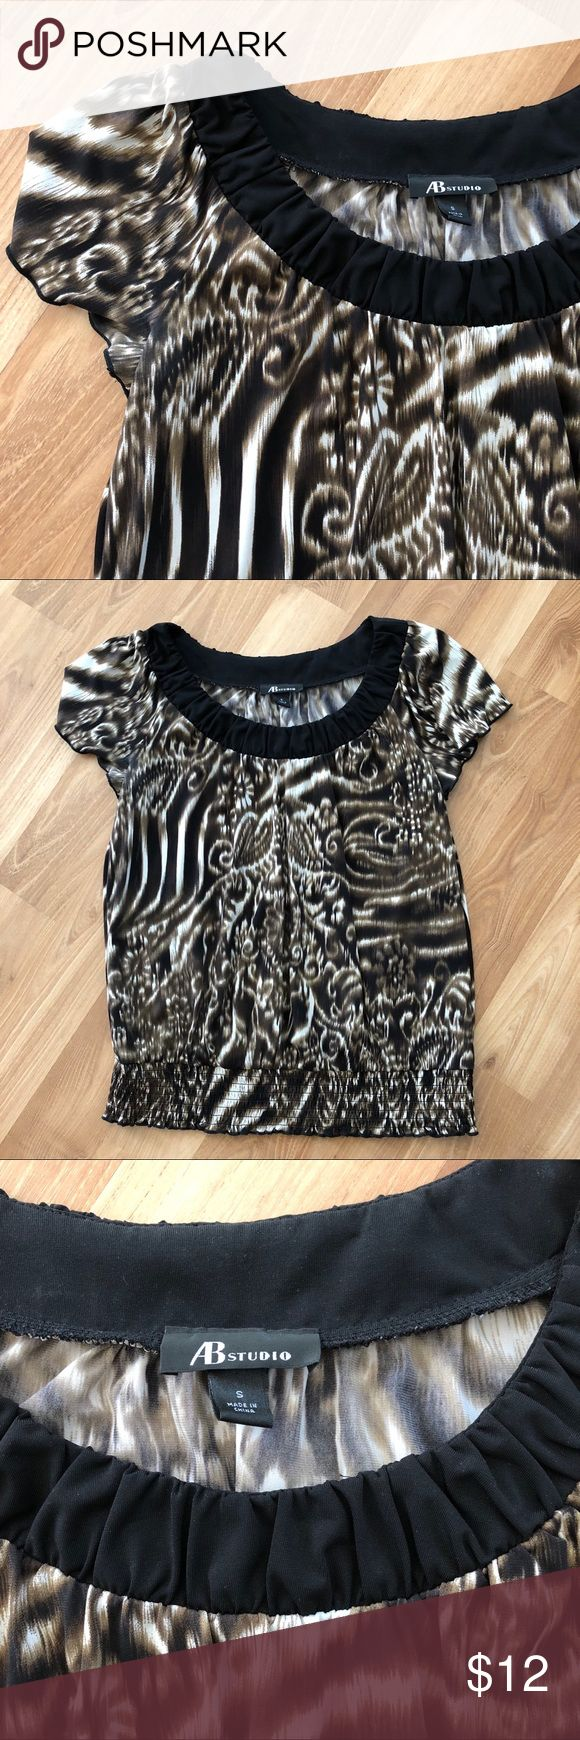 Short Sleeve Top This short sleeve top is soft and stretchy. Dressy and comfortable. AB Studio Tops Blouses